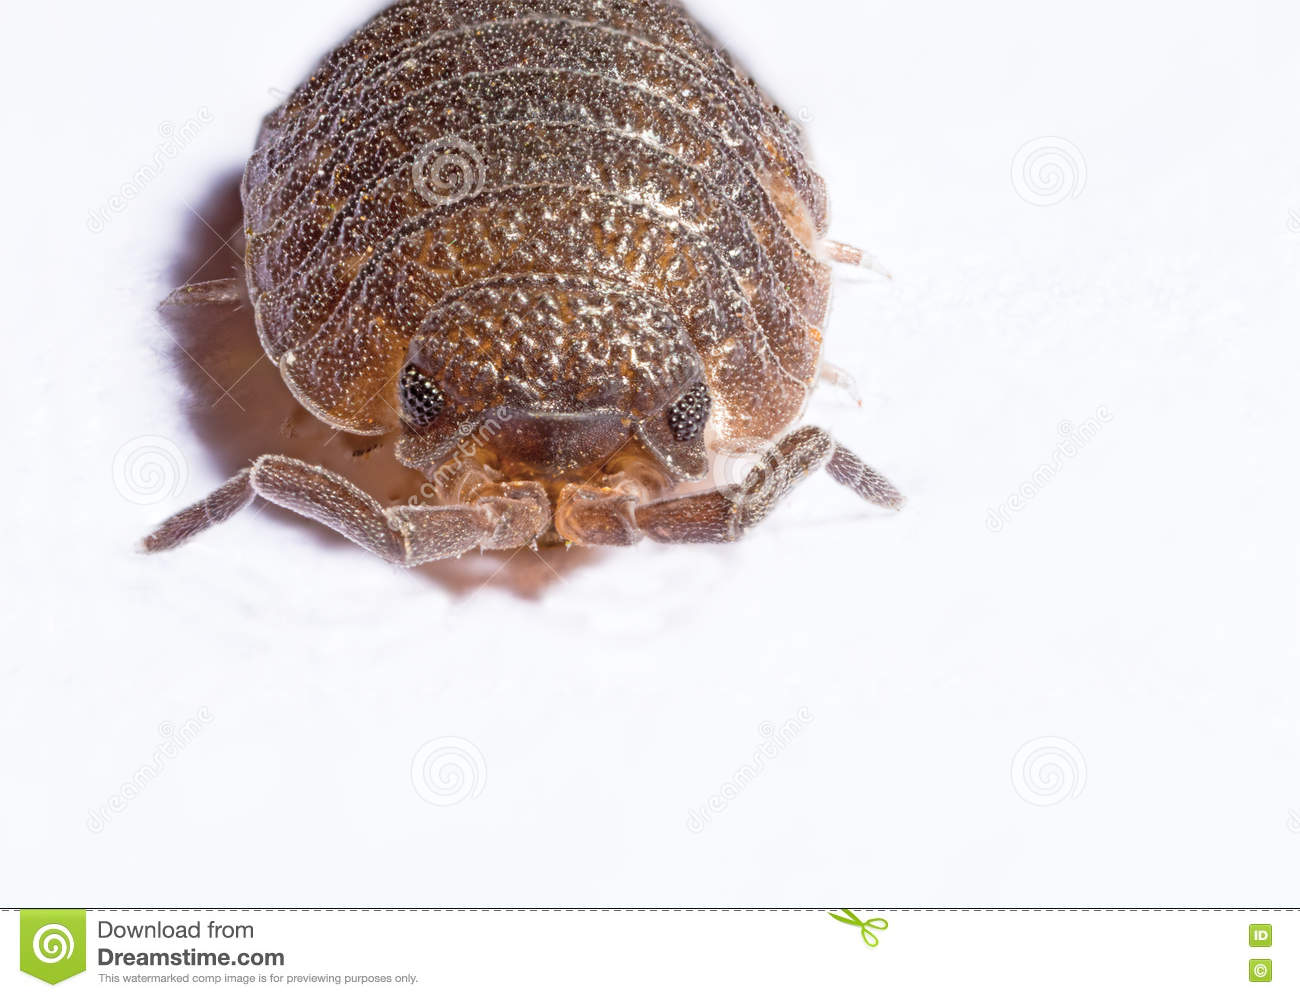 Extreme close up of a woodlouse